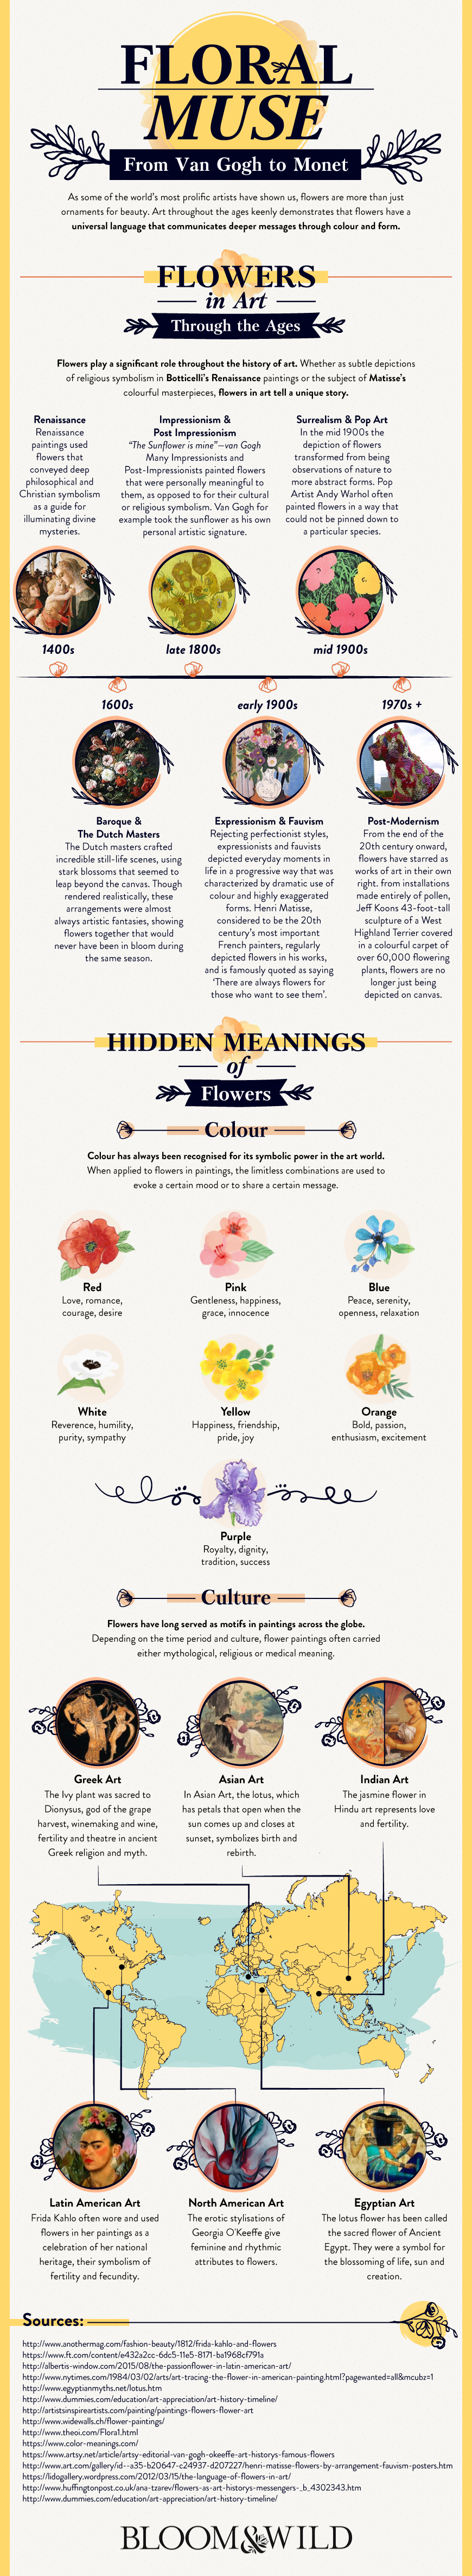 Bloom & Wild - Infographic - Floral Muse - Final Final Design.png